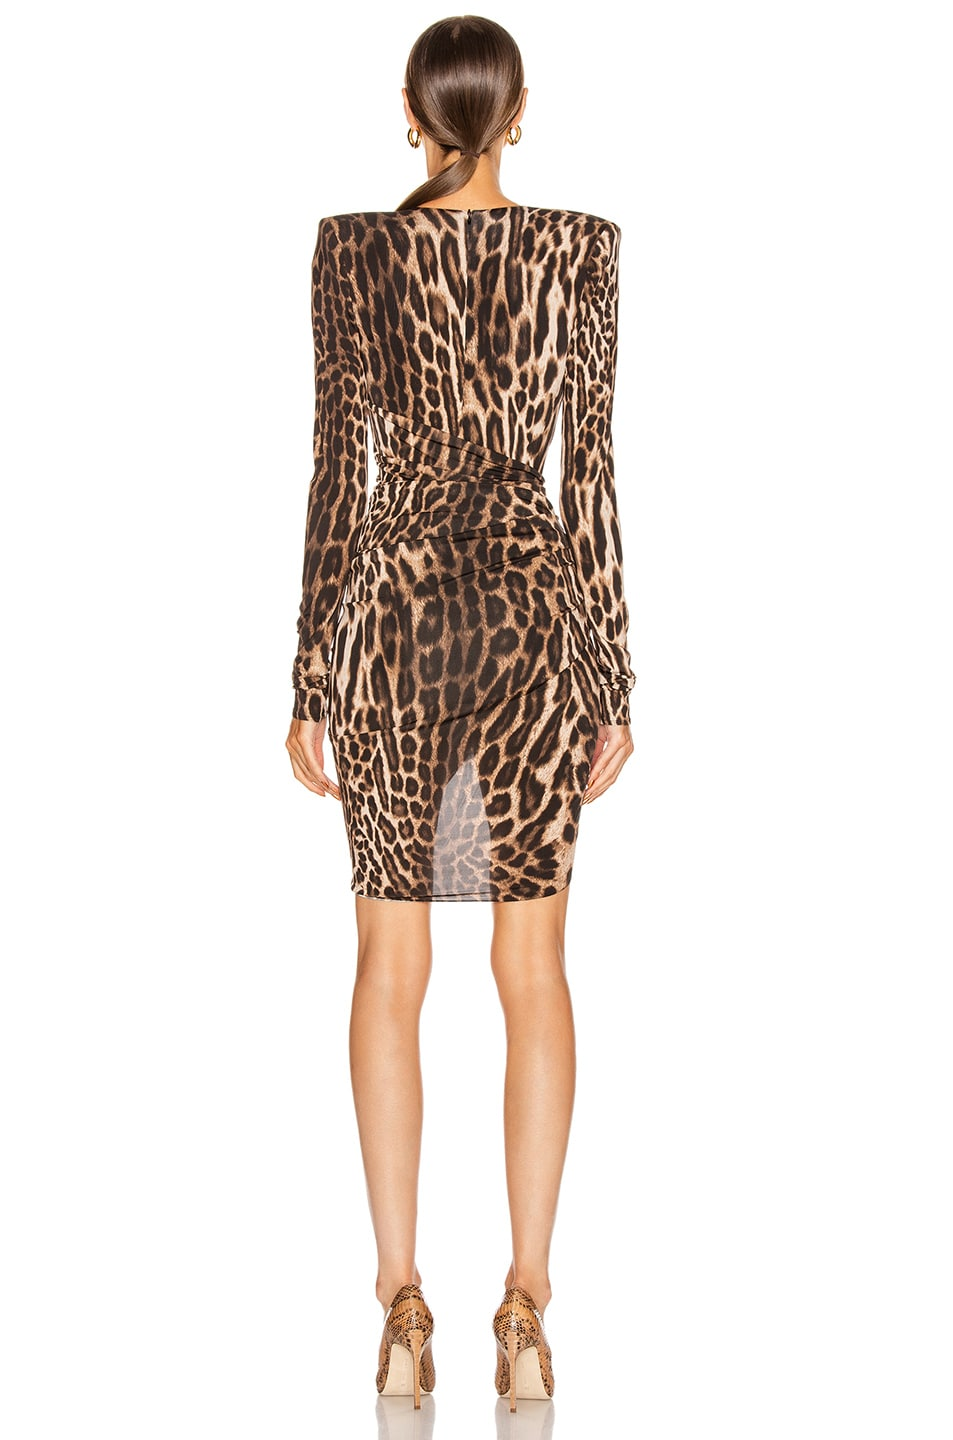 Image 4 of Alexandre Vauthier for FWRD Plunging Ruched Mini Dress in Animal